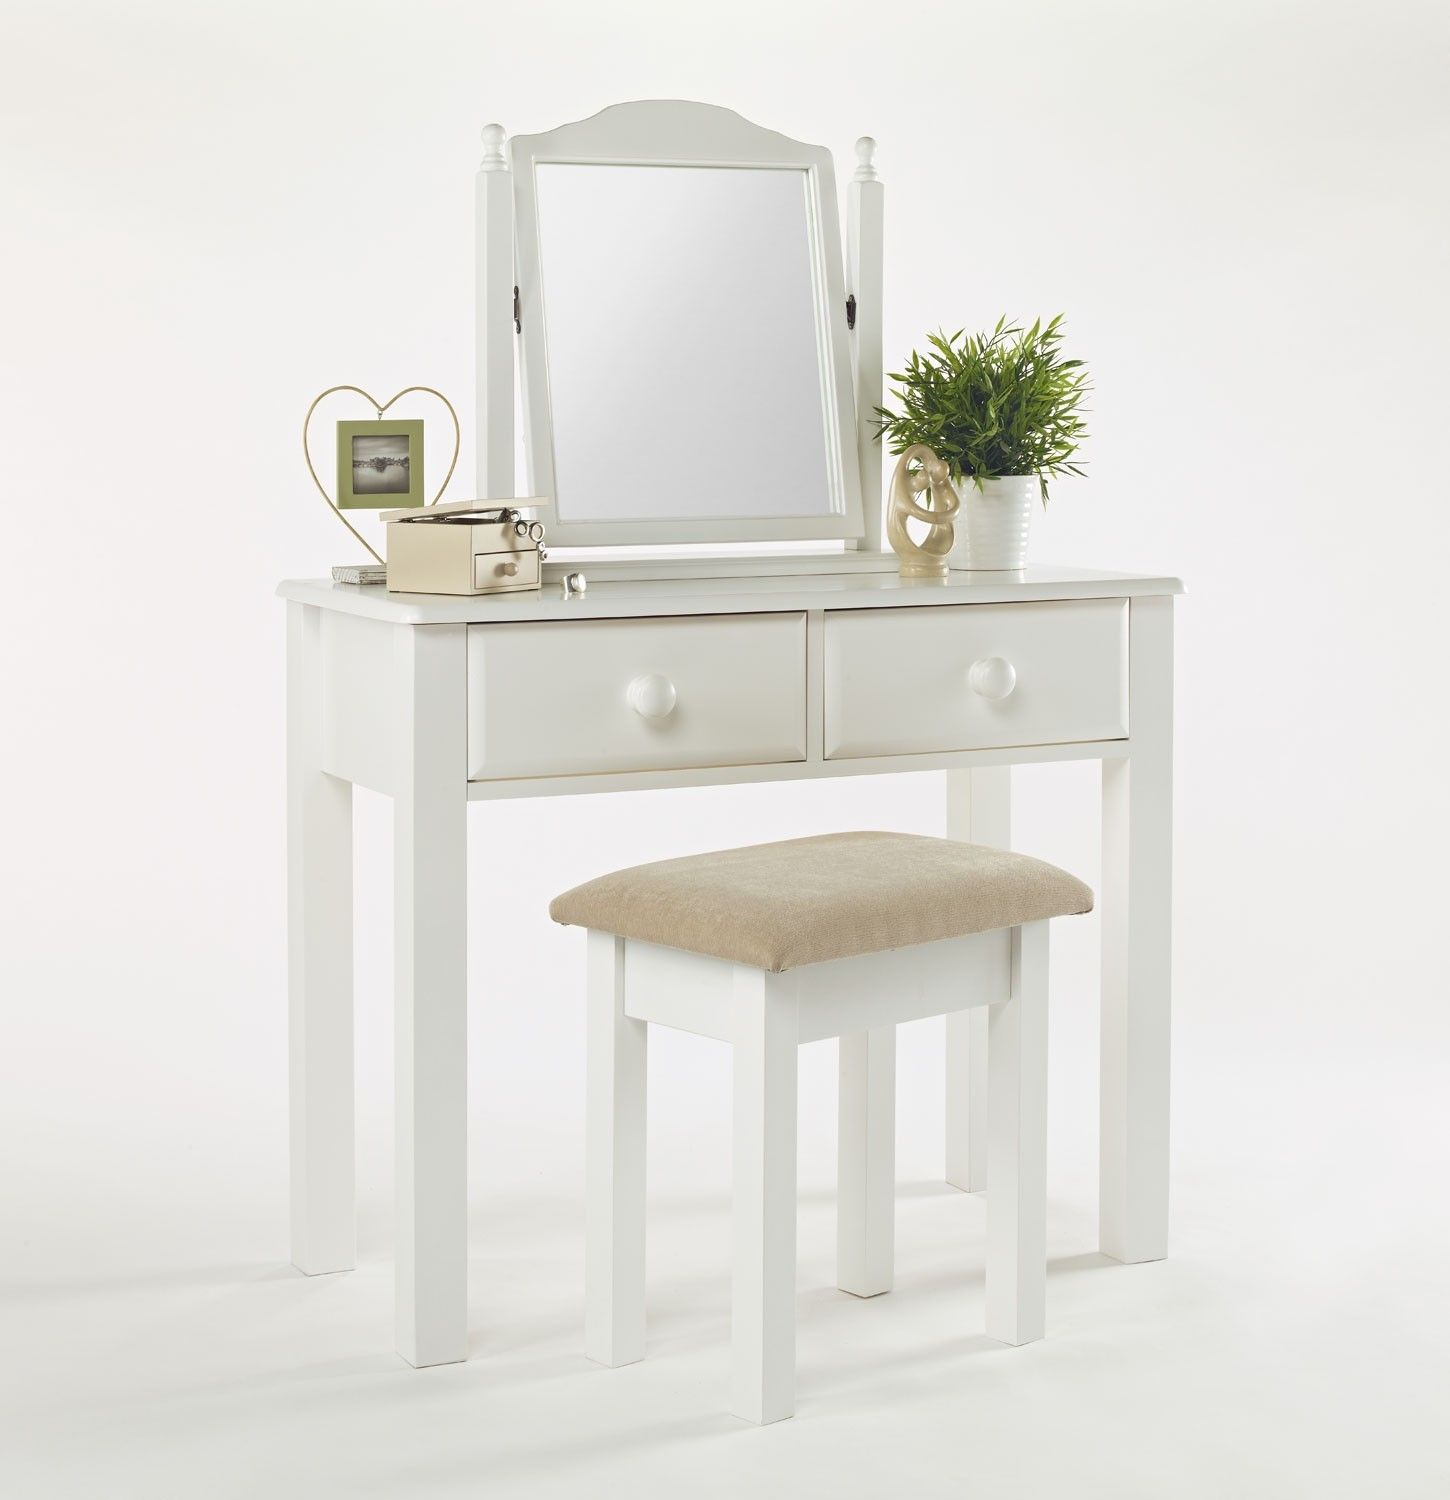 Modern dresser with mirror and chair - White Wooden Dressing Table Stool A Dressing Stand Or Table Is Just One Of The Most Important Furniture In Houses That Are